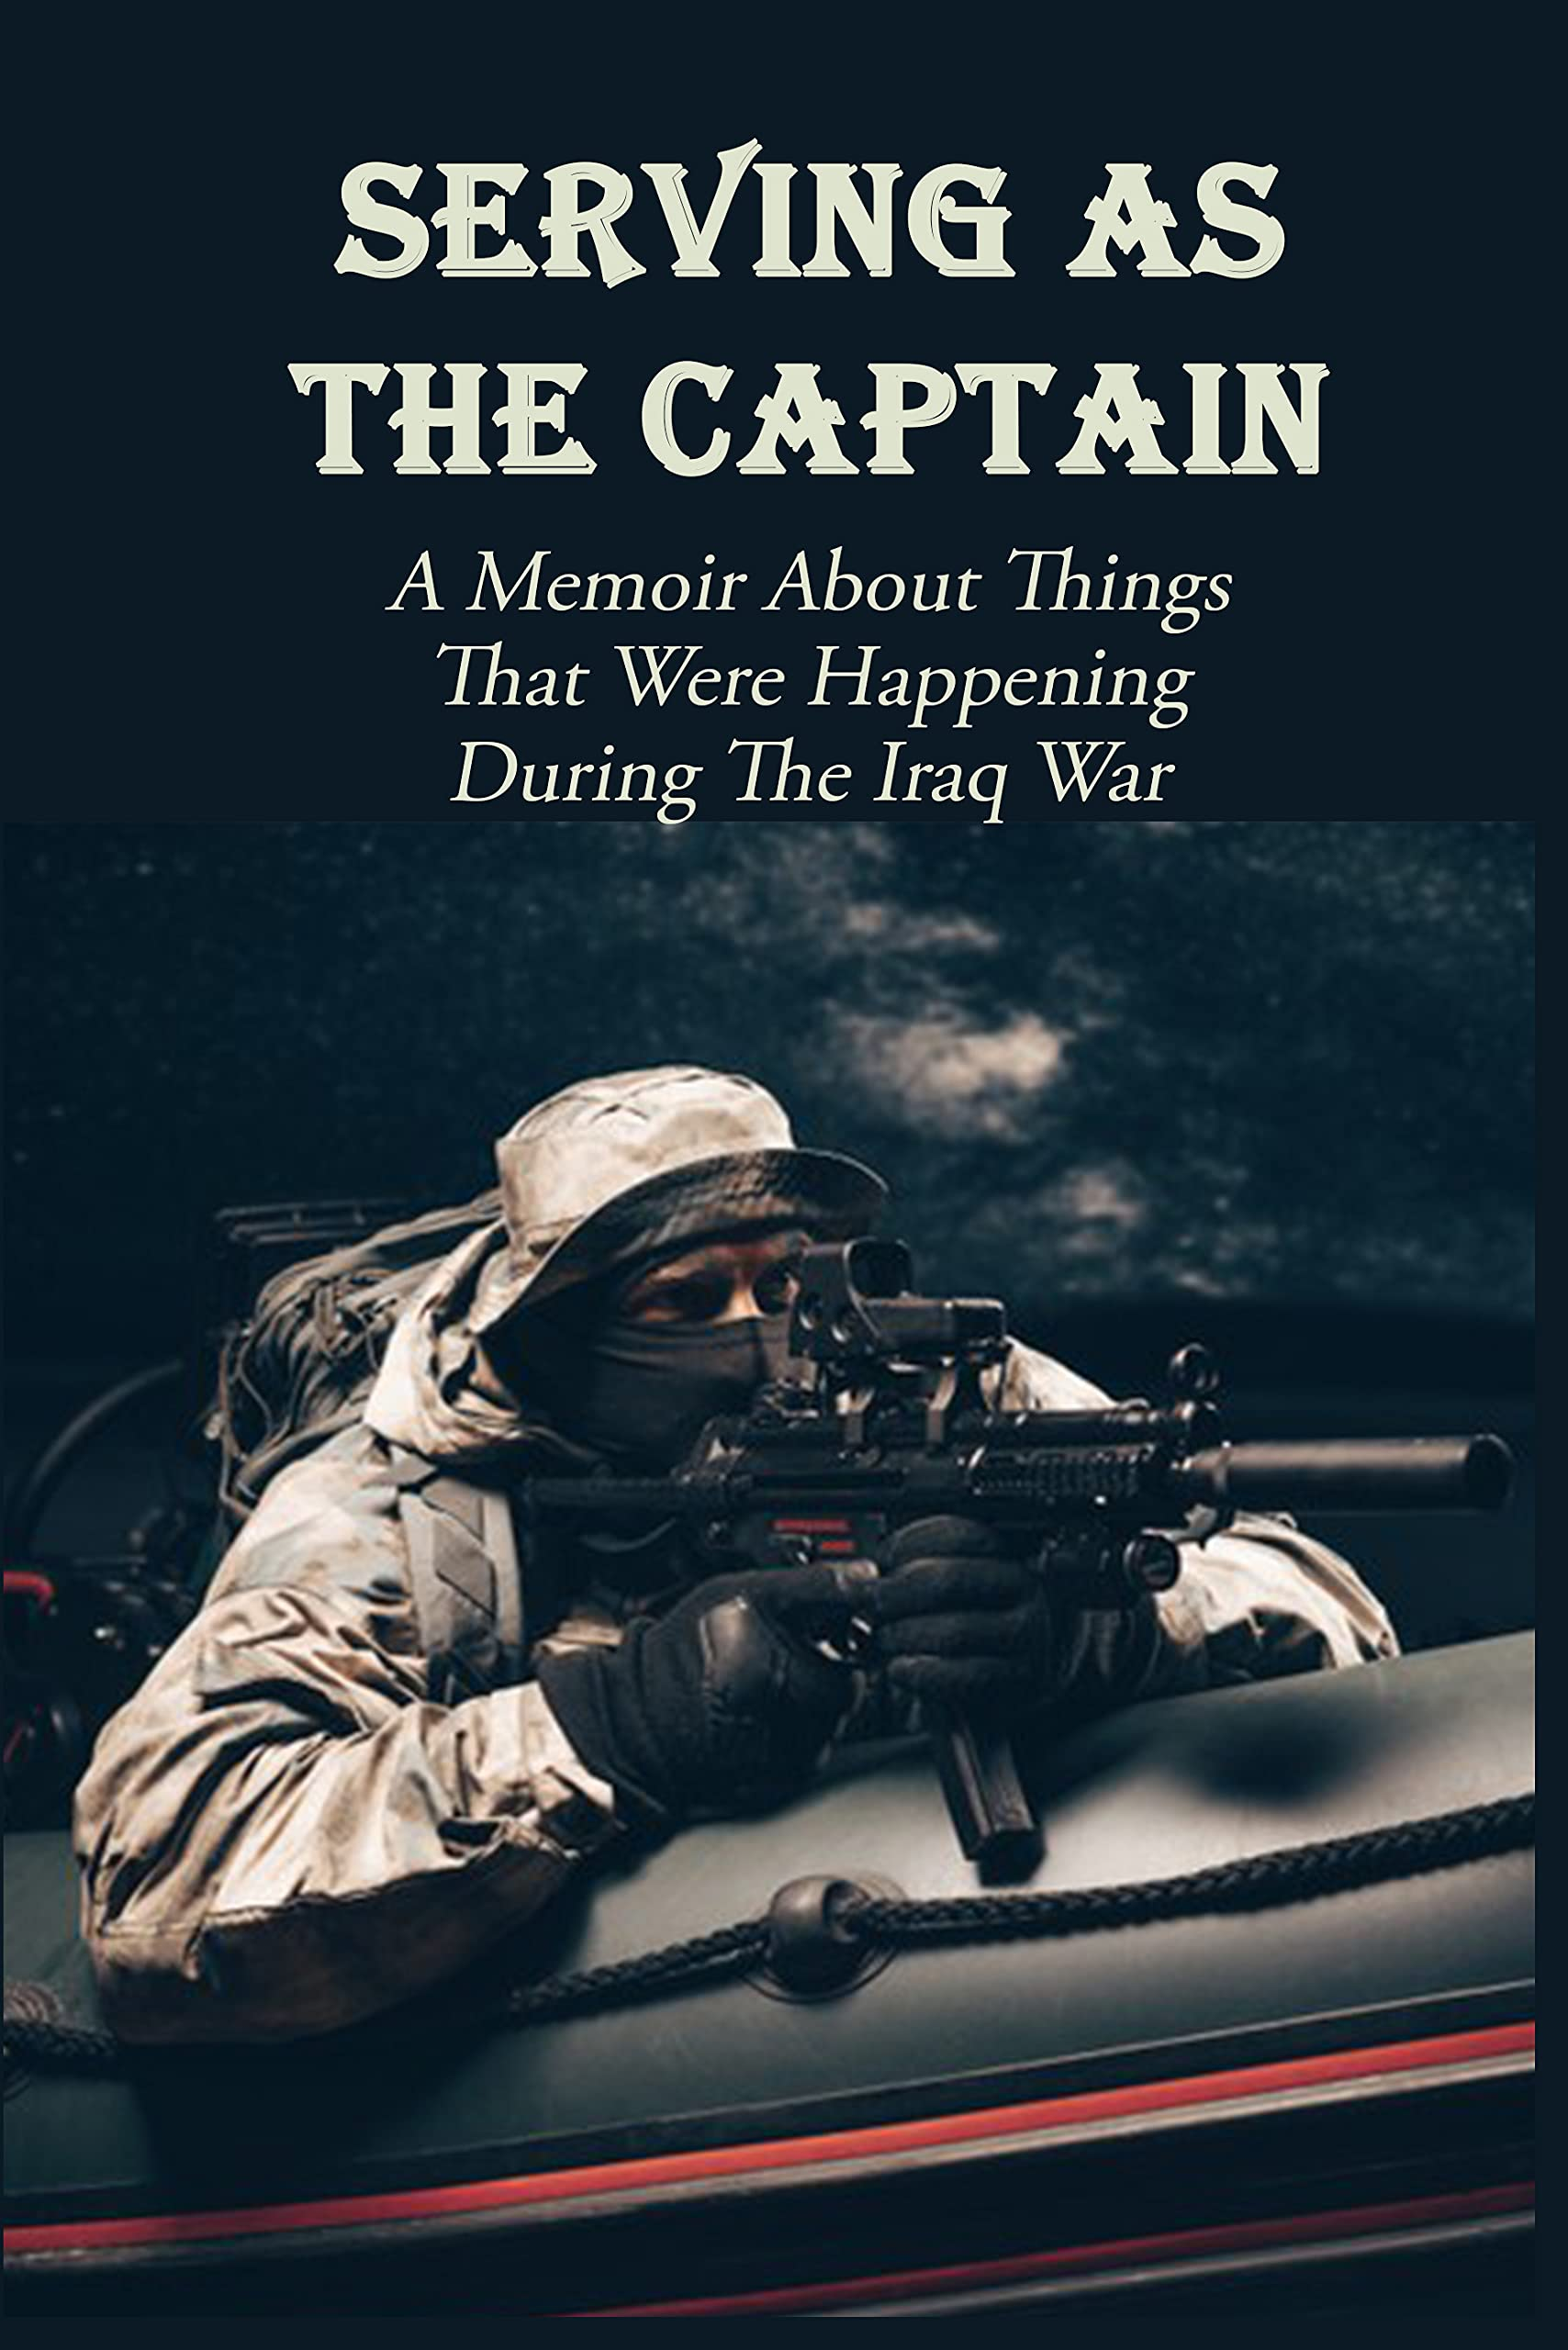 Serving As The Captain: A Memoir About Things That Were Happening During The Iraq War: Military Books